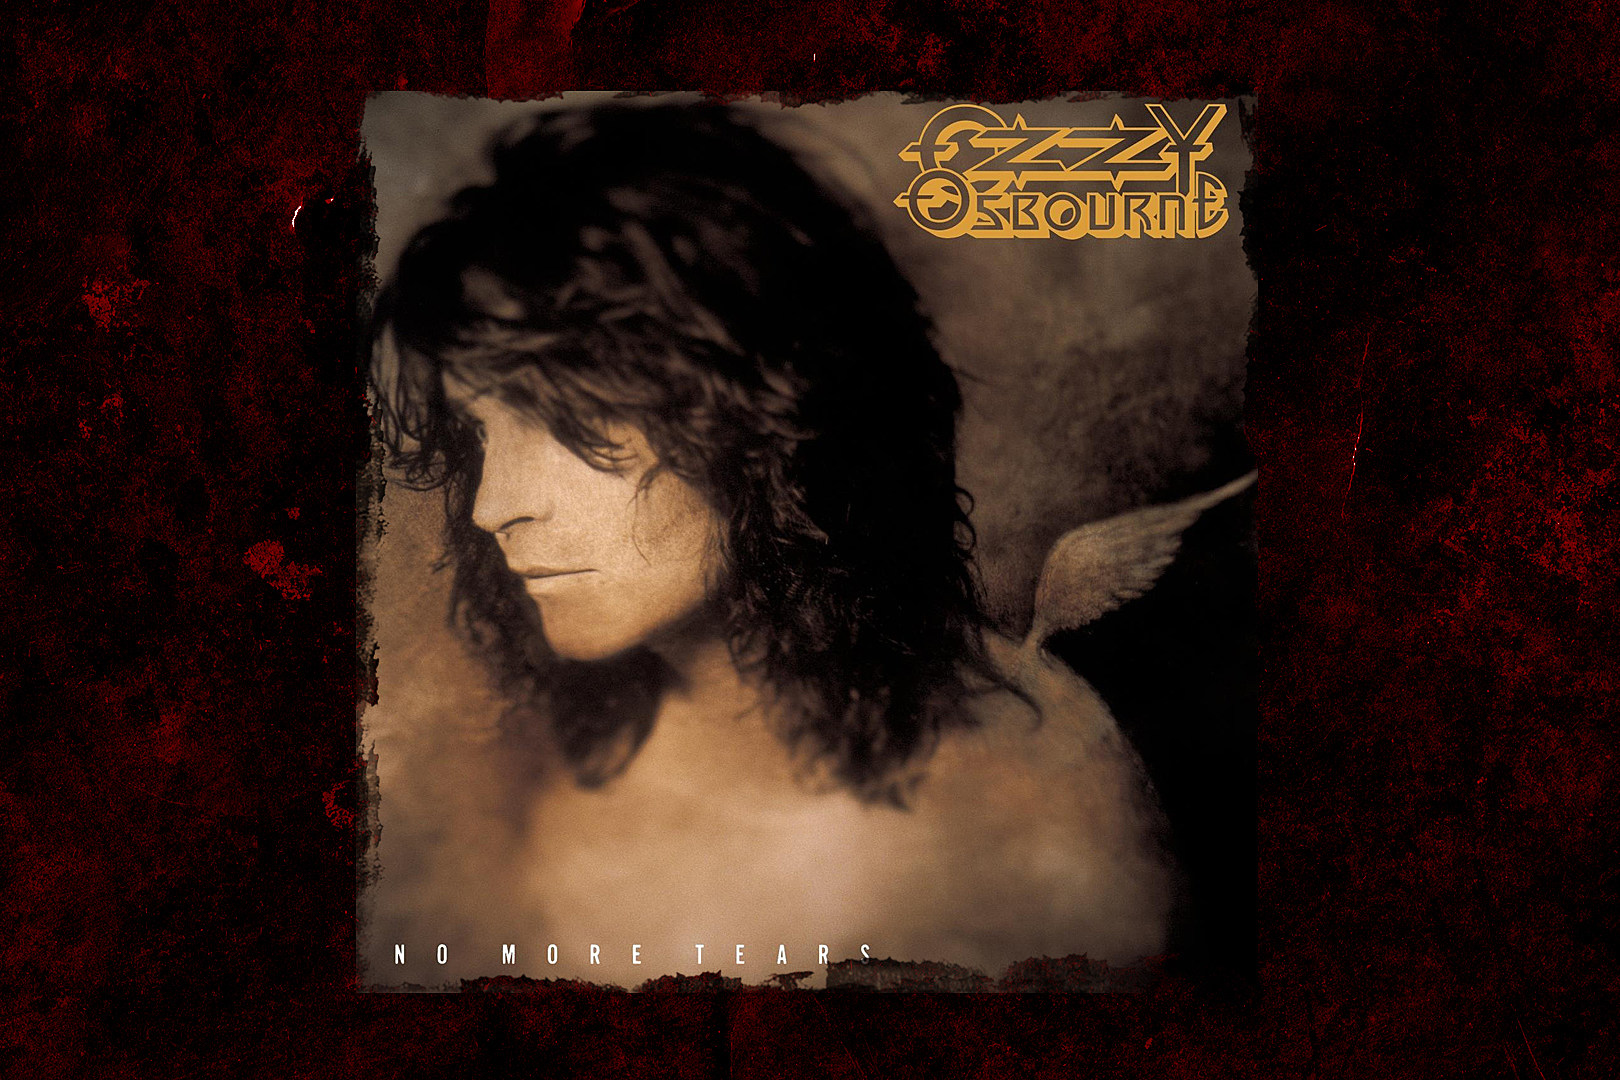 27 Years Ago: Ozzy Osbourne Gets Sober and Releases the Smash LP 'No More Tears'